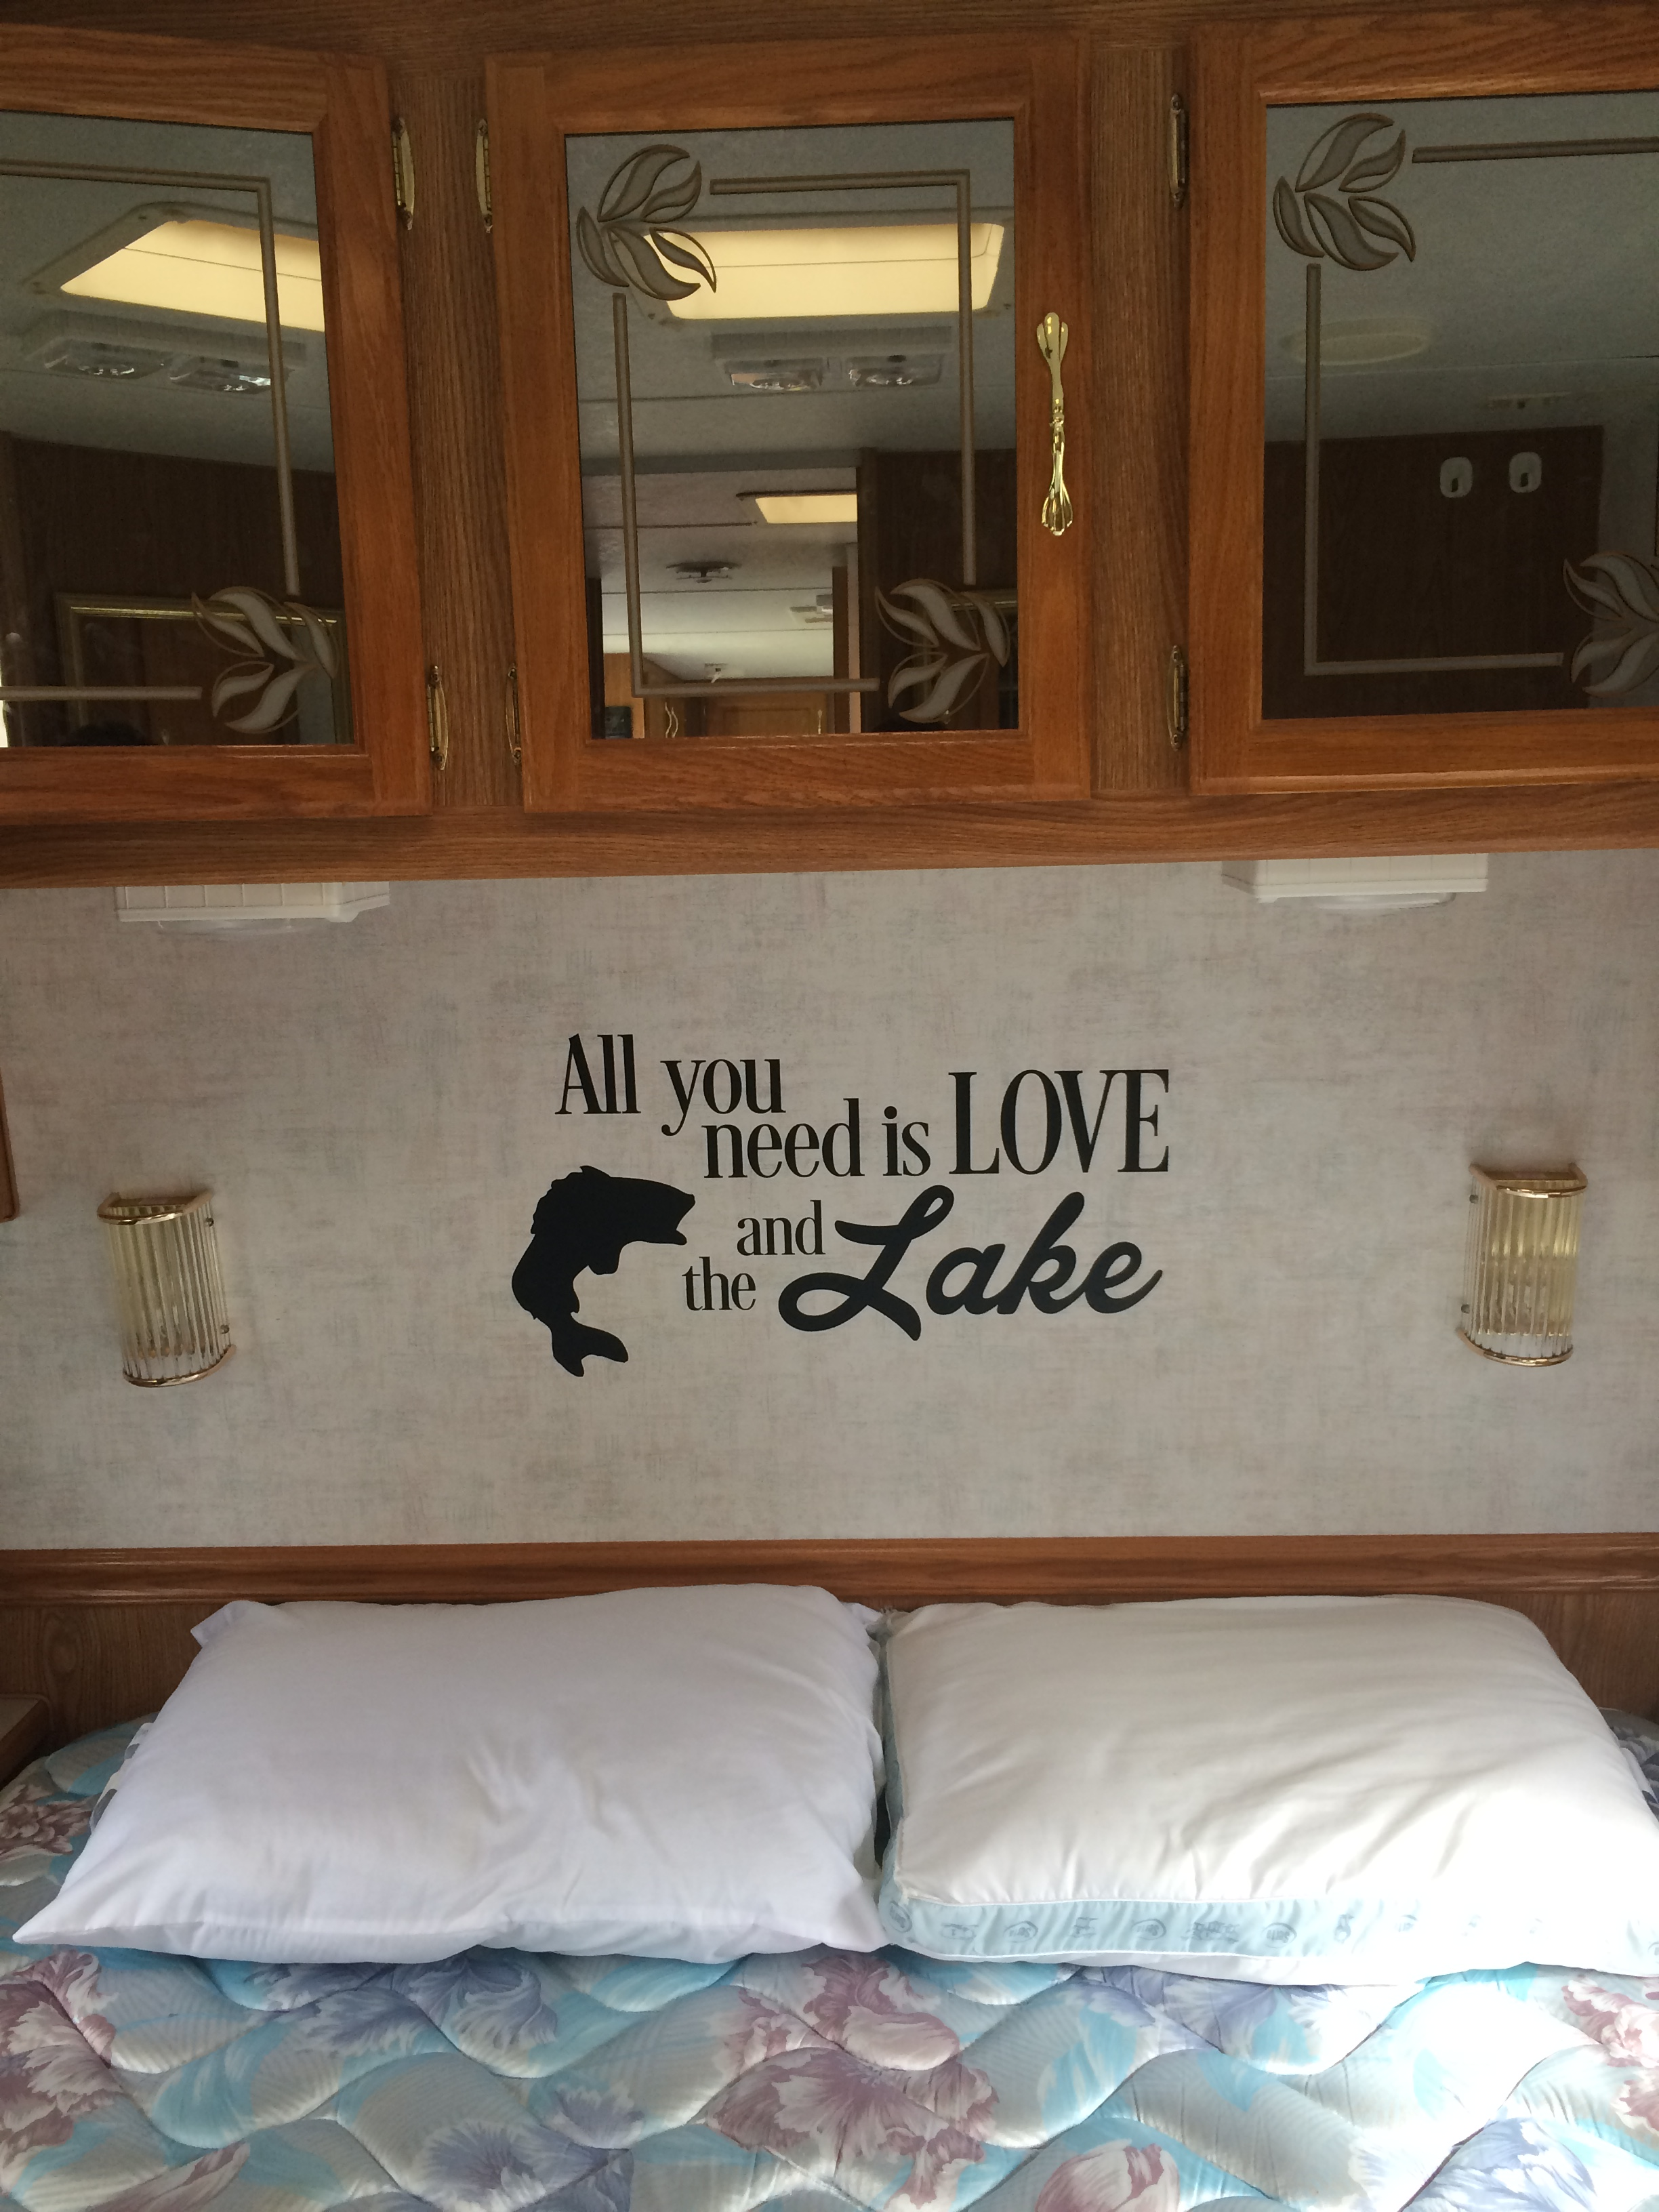 vv048-d Camper Wall Decor Love and Lake RV Accessories Decal Sticker